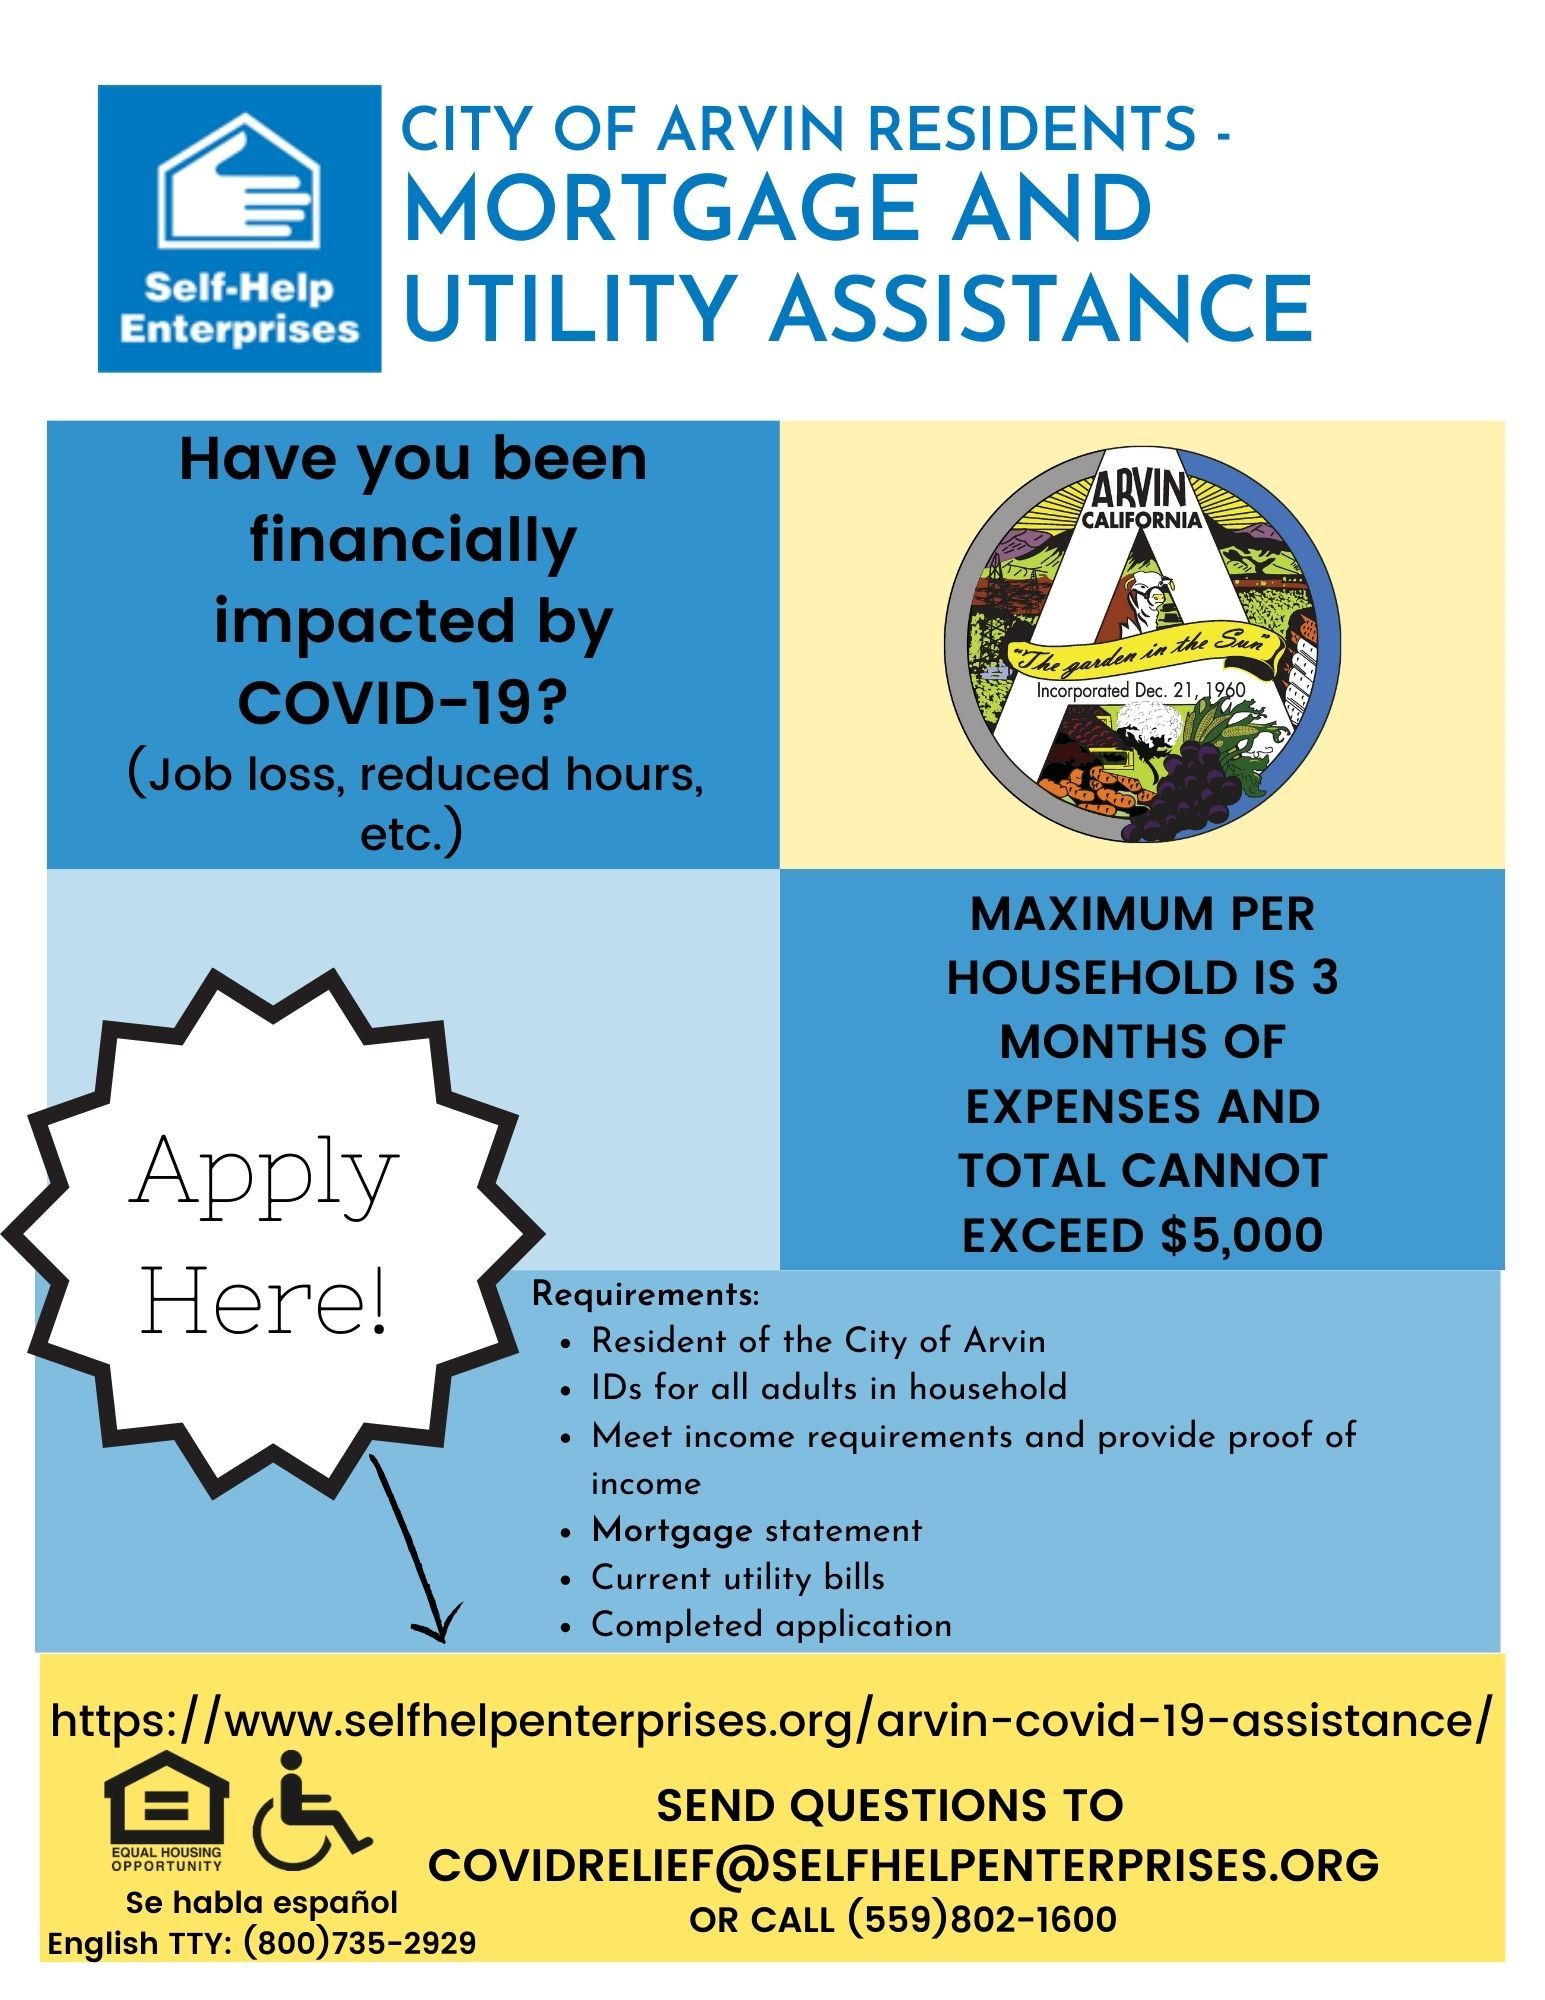 Arvin Flyer Mortgage and Utility Assistance